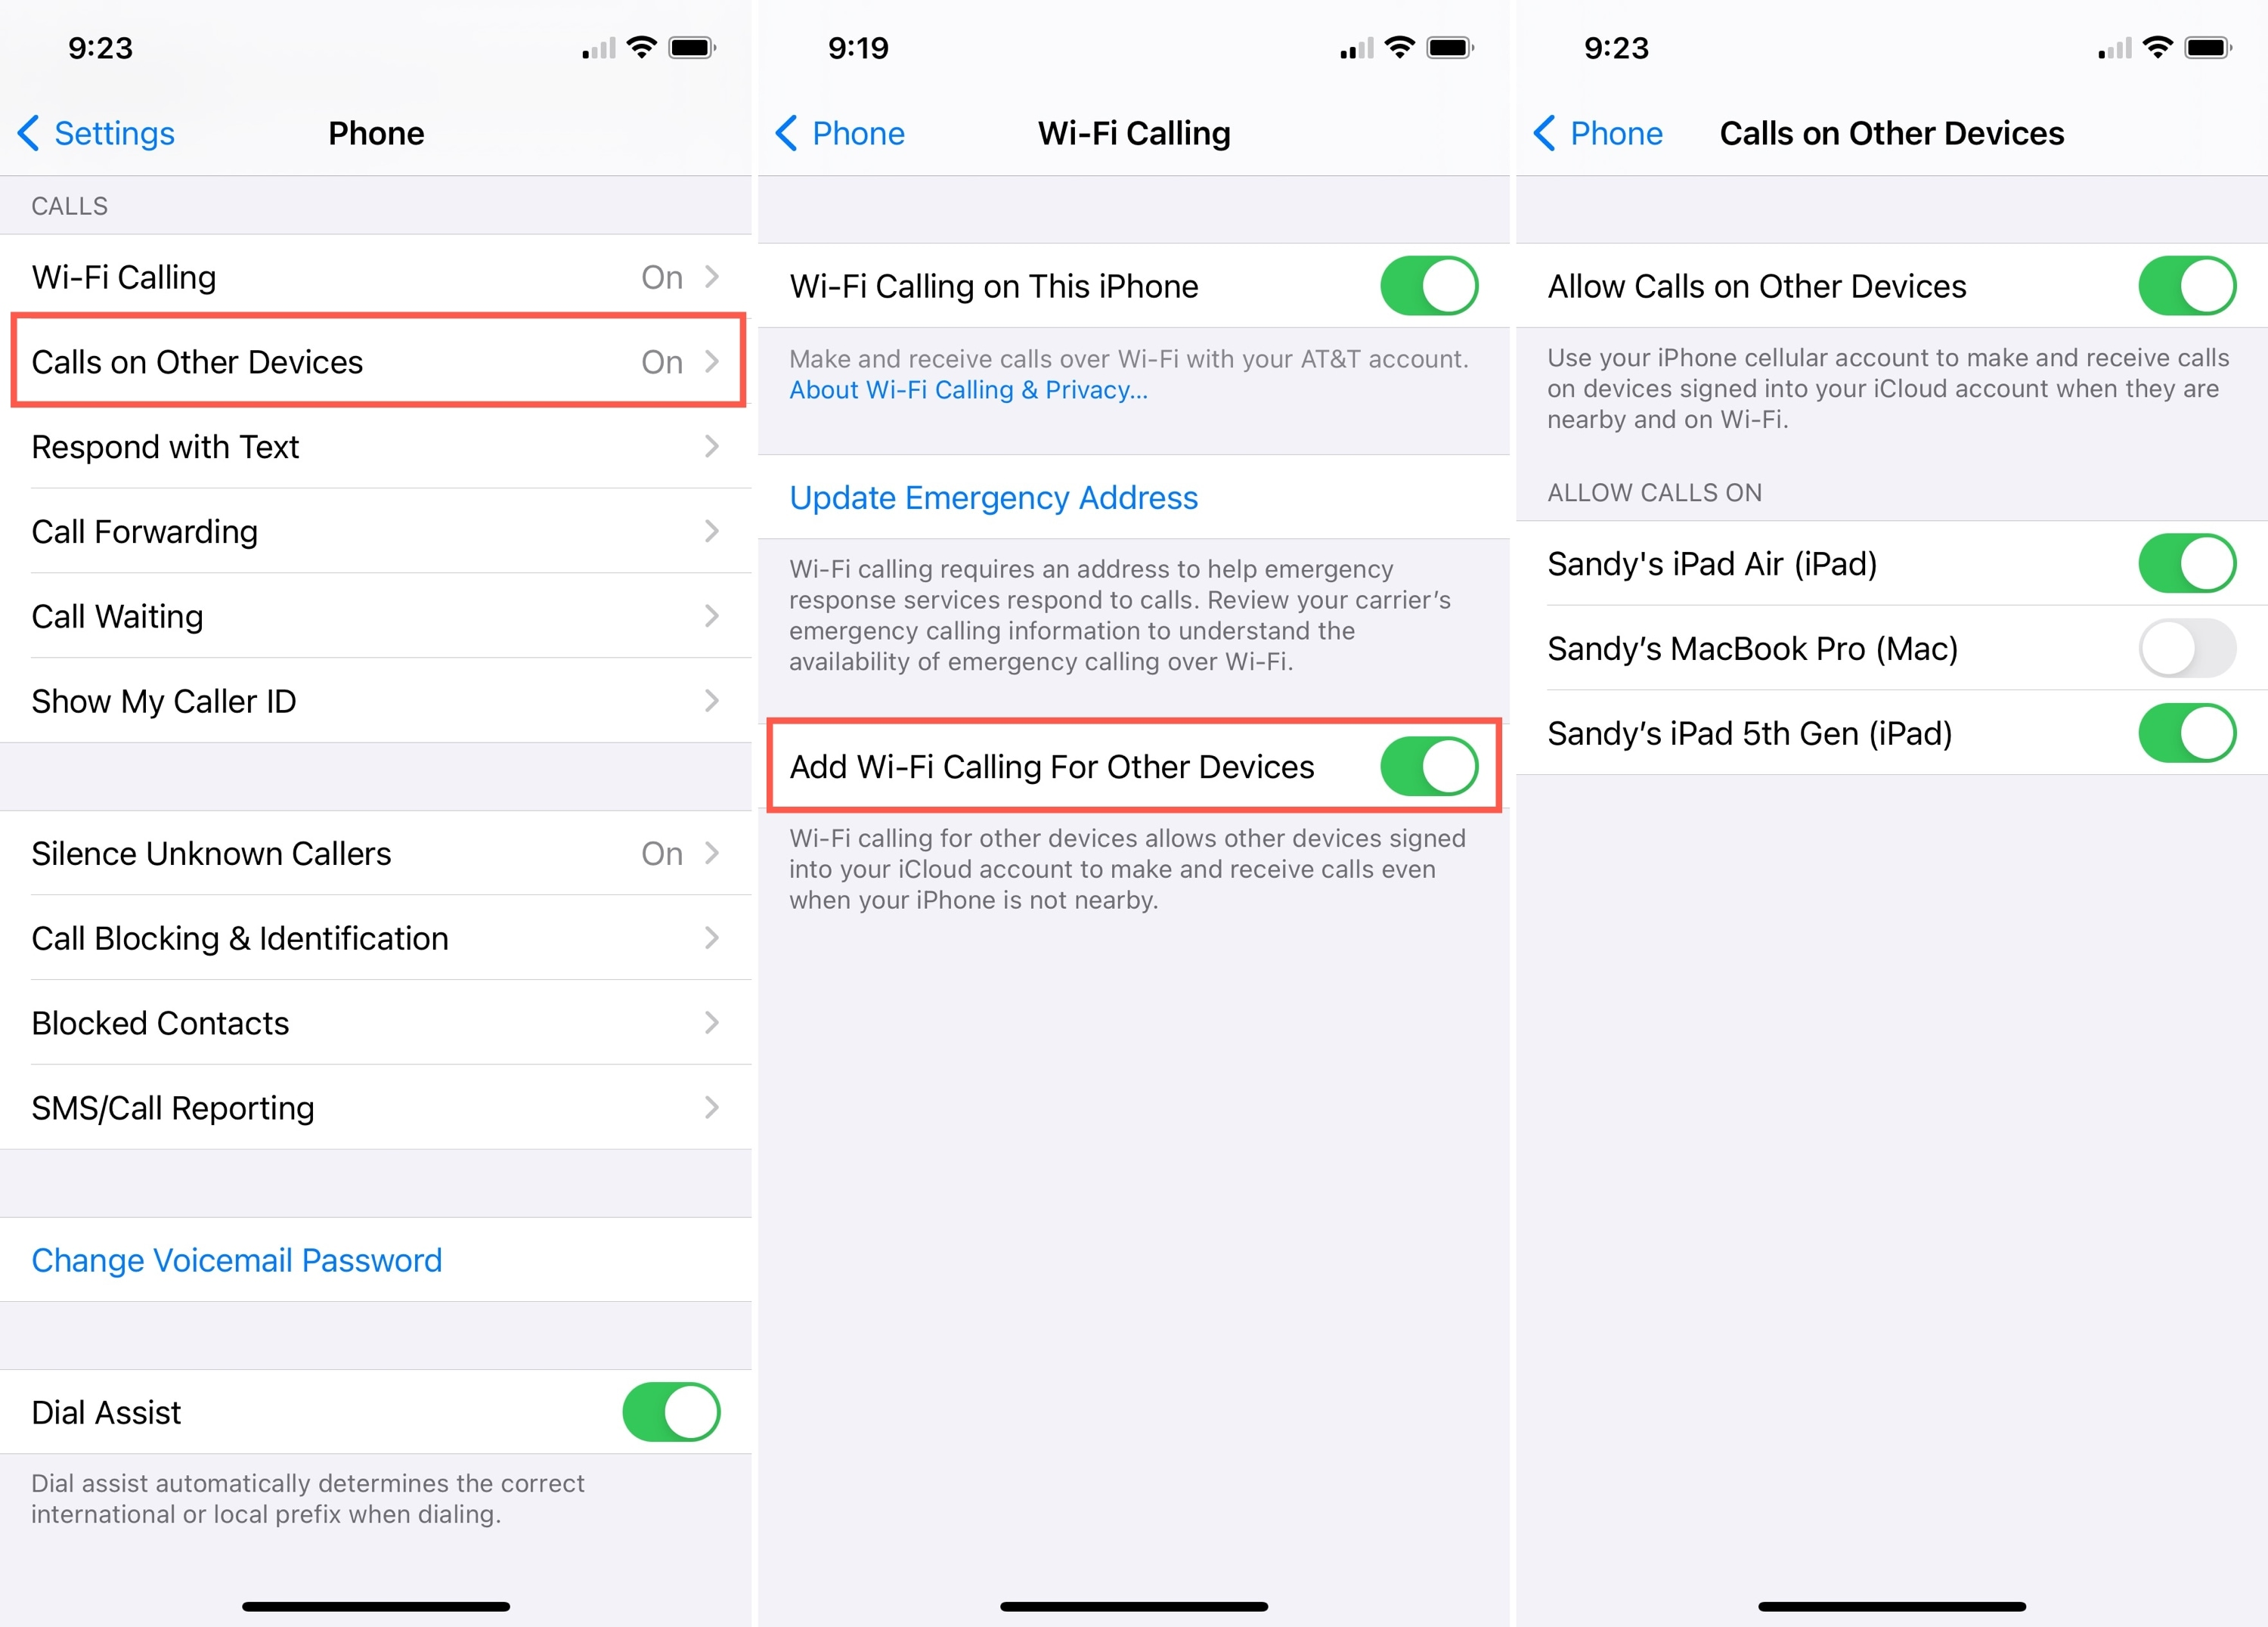 Turn on Wi-Fi Calling For Other Devices